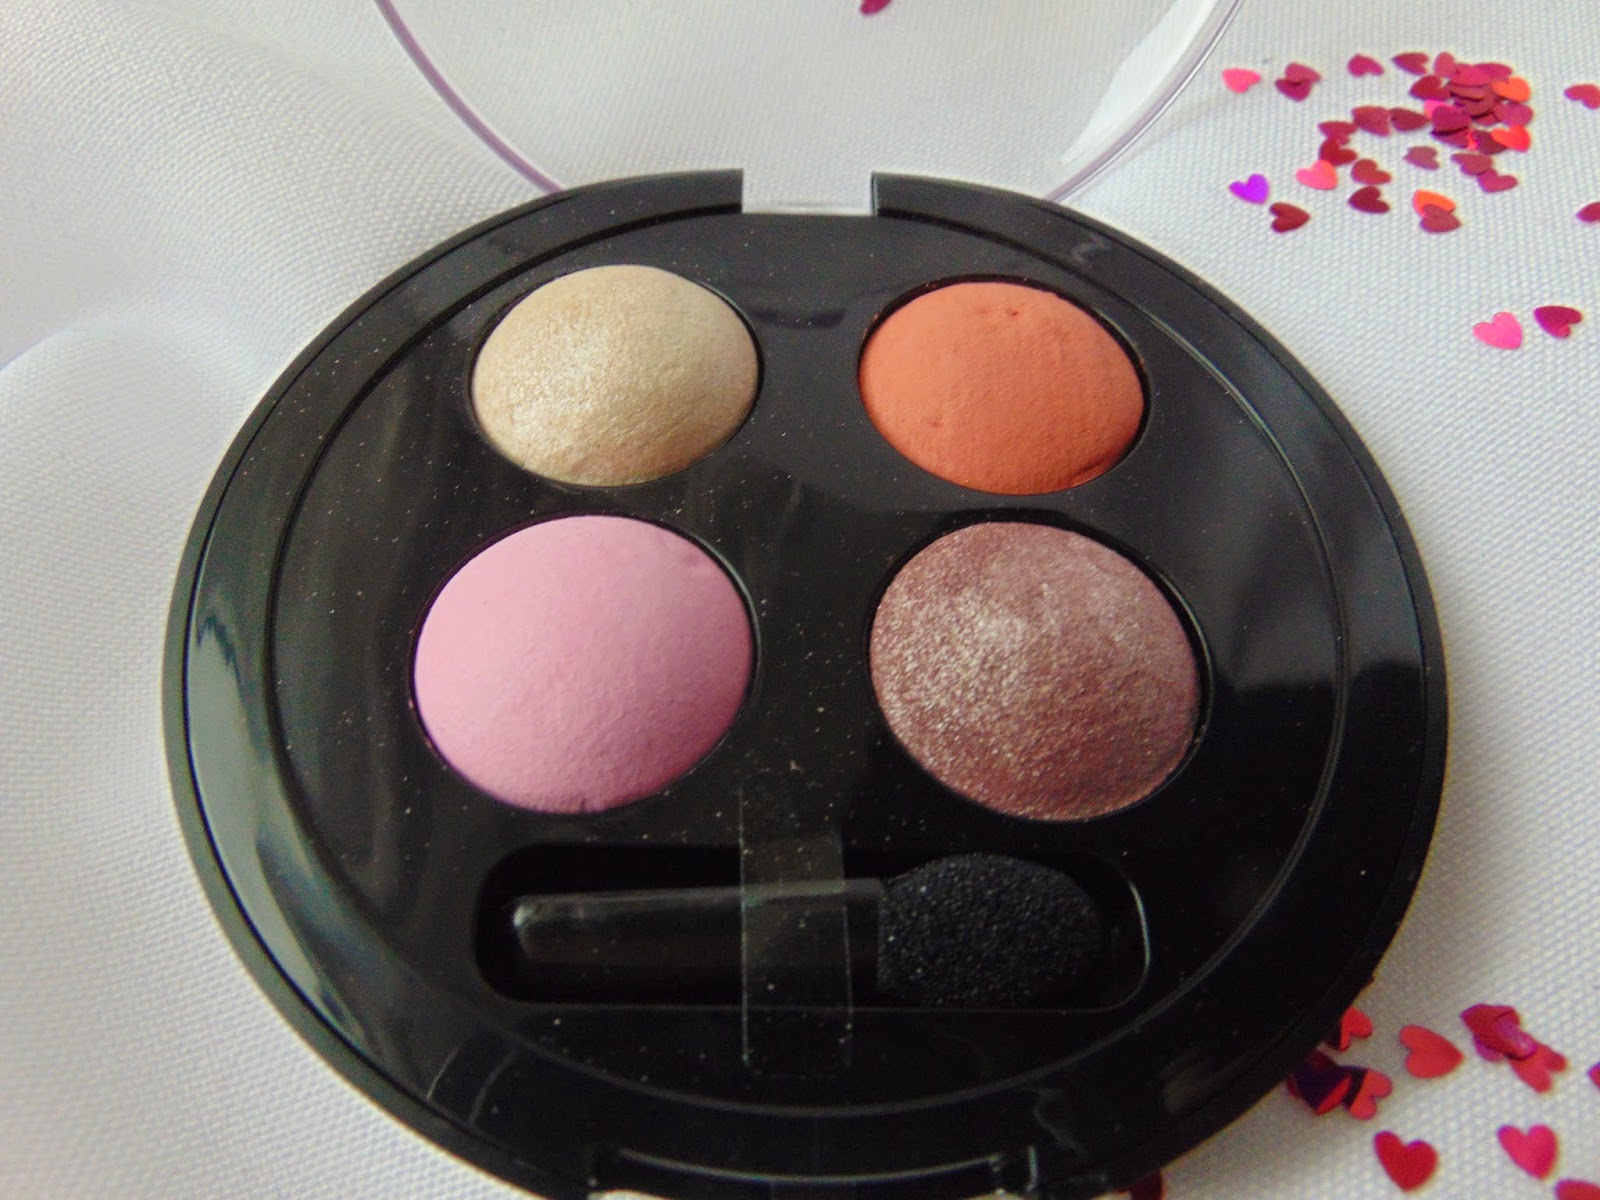 p2 Limited Edition: Just dream like - soft illusion quattro eye shadow - Wonderland - www.annitschkasblog.de